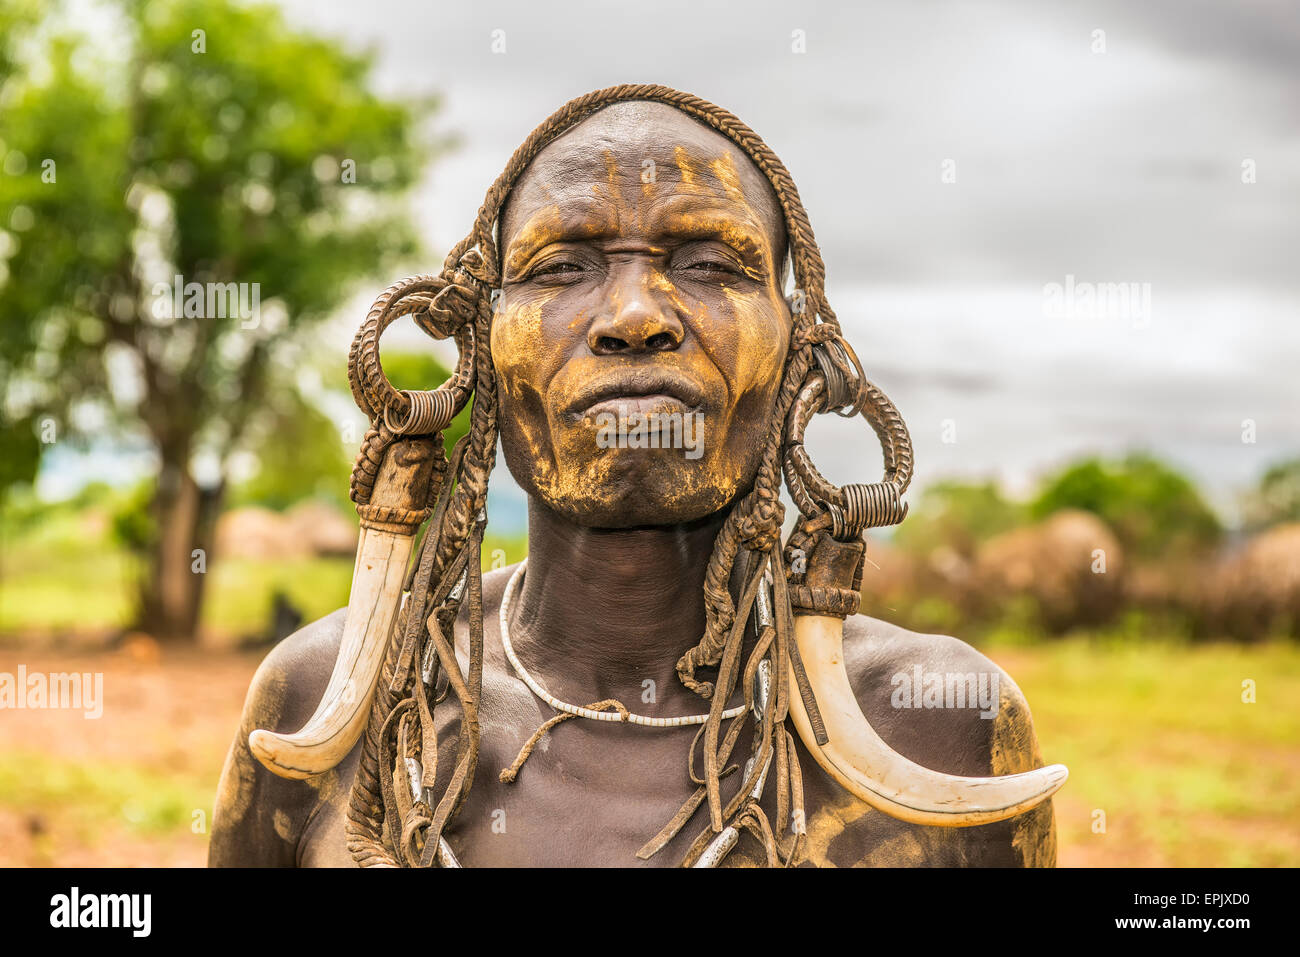 Warrior from the african tribe Mursi with traditional horns in Mago National Park, Ethiopia - Stock Image